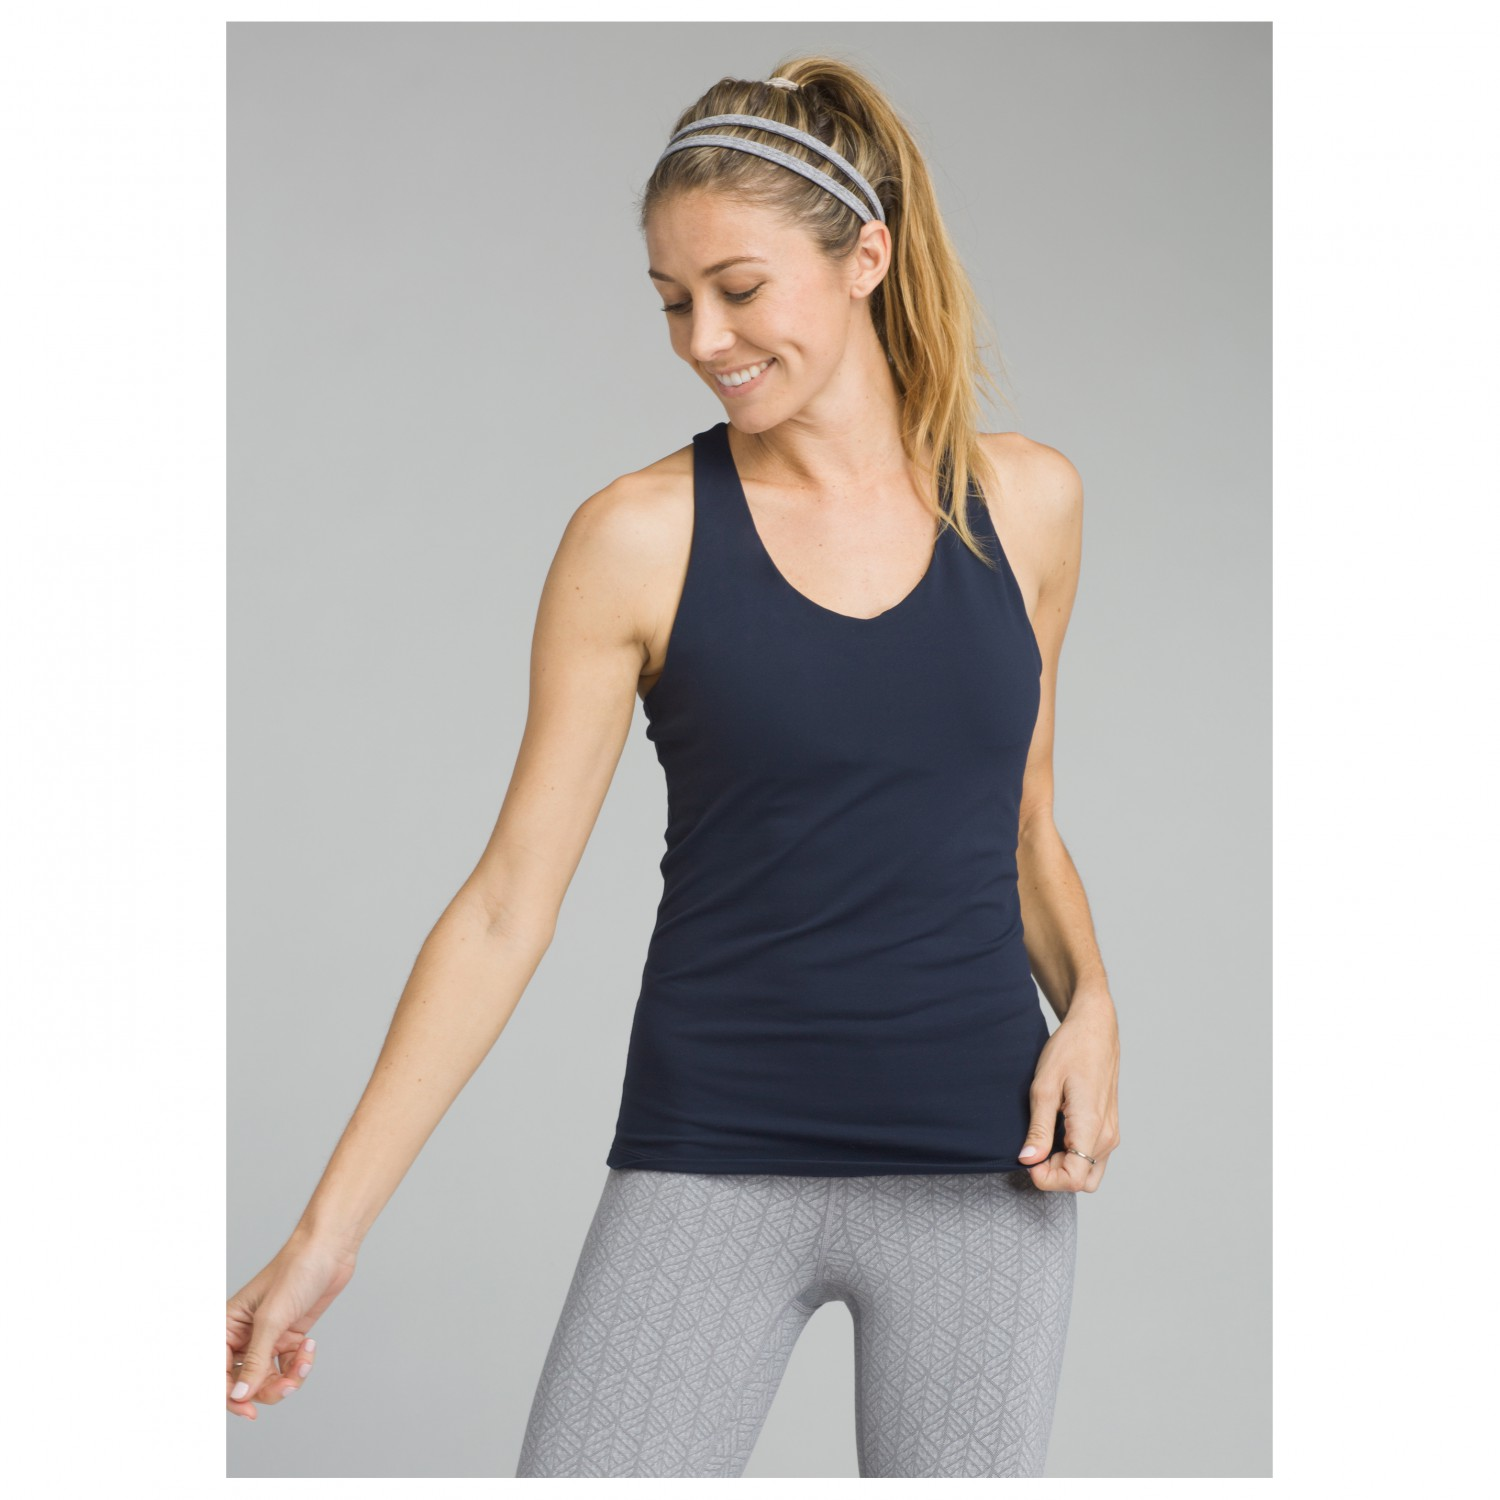 See our great selection of hot women's yoga and workout tops such as cami's, shirts and tanks. Stylish activewear & chic transitional tops for every activity!